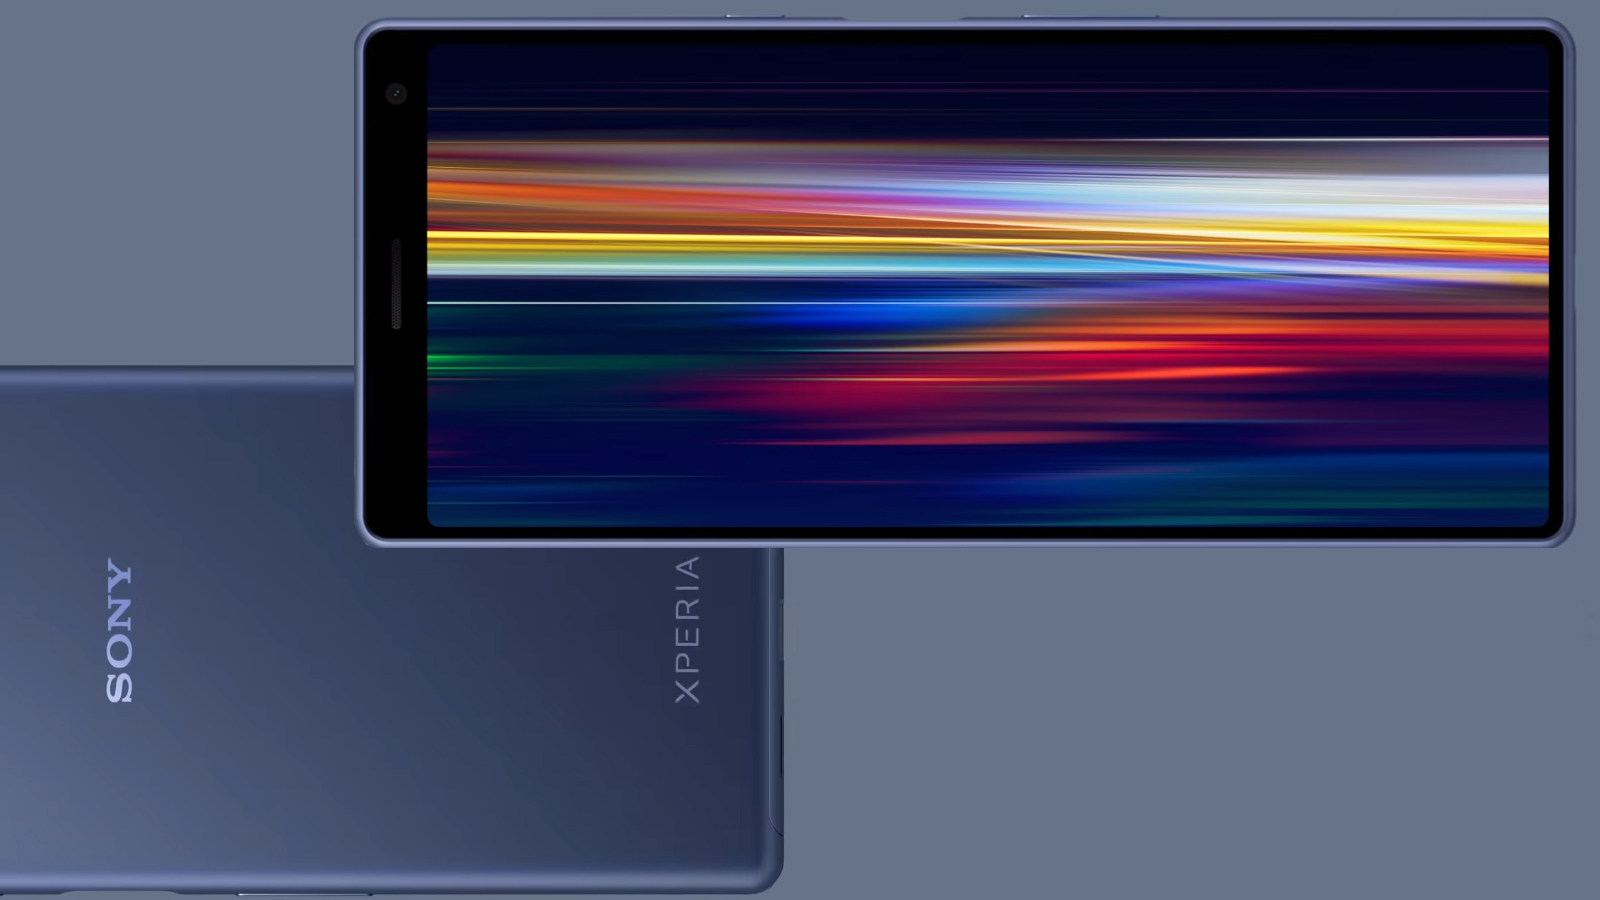 Sony Xperia Mobile